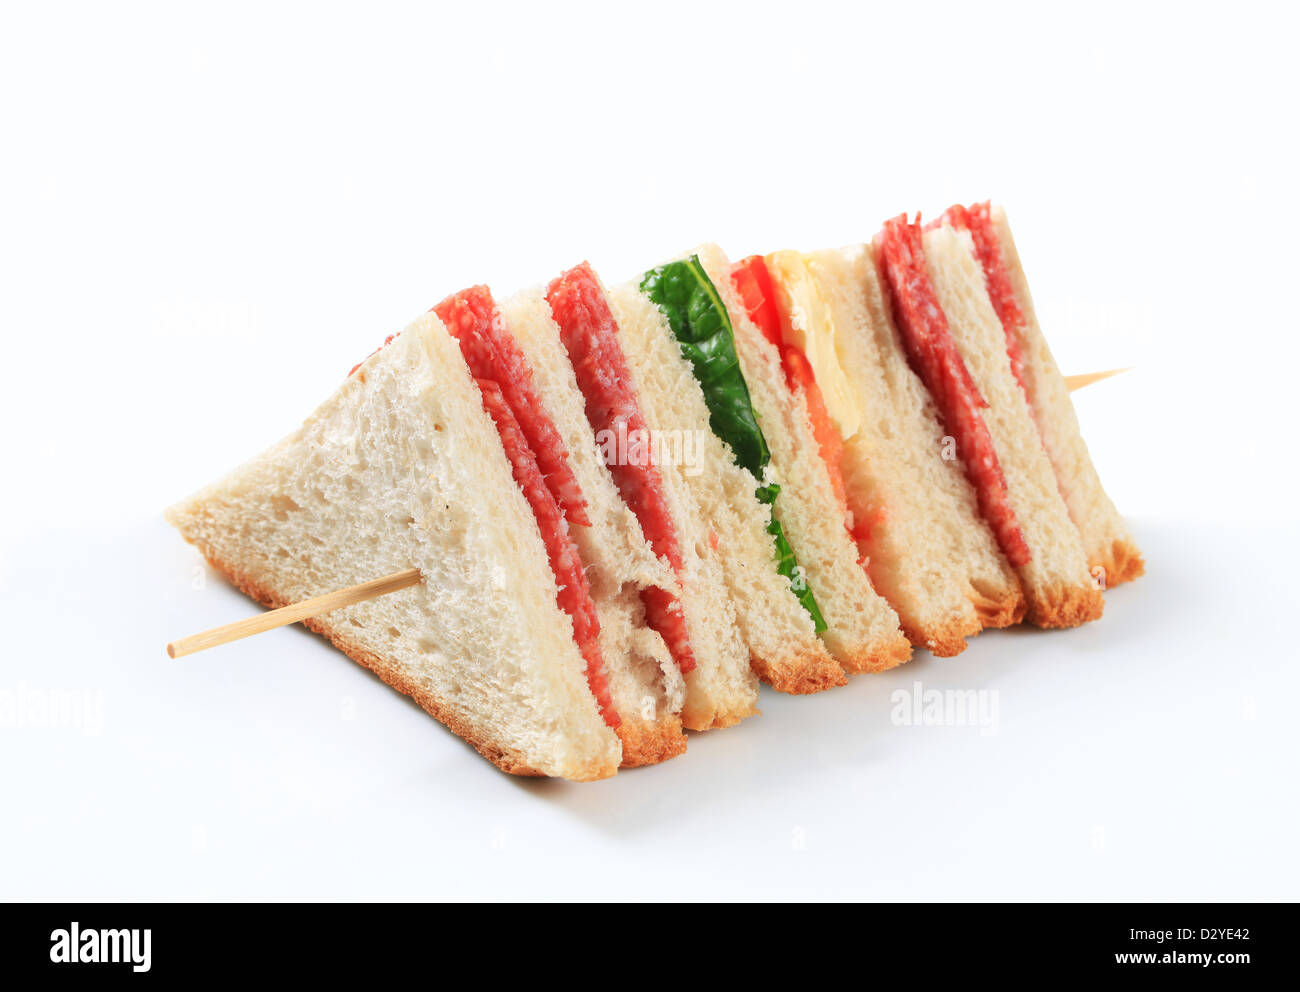 Multi-layered sandwich with thin sliced salami - Stock Image